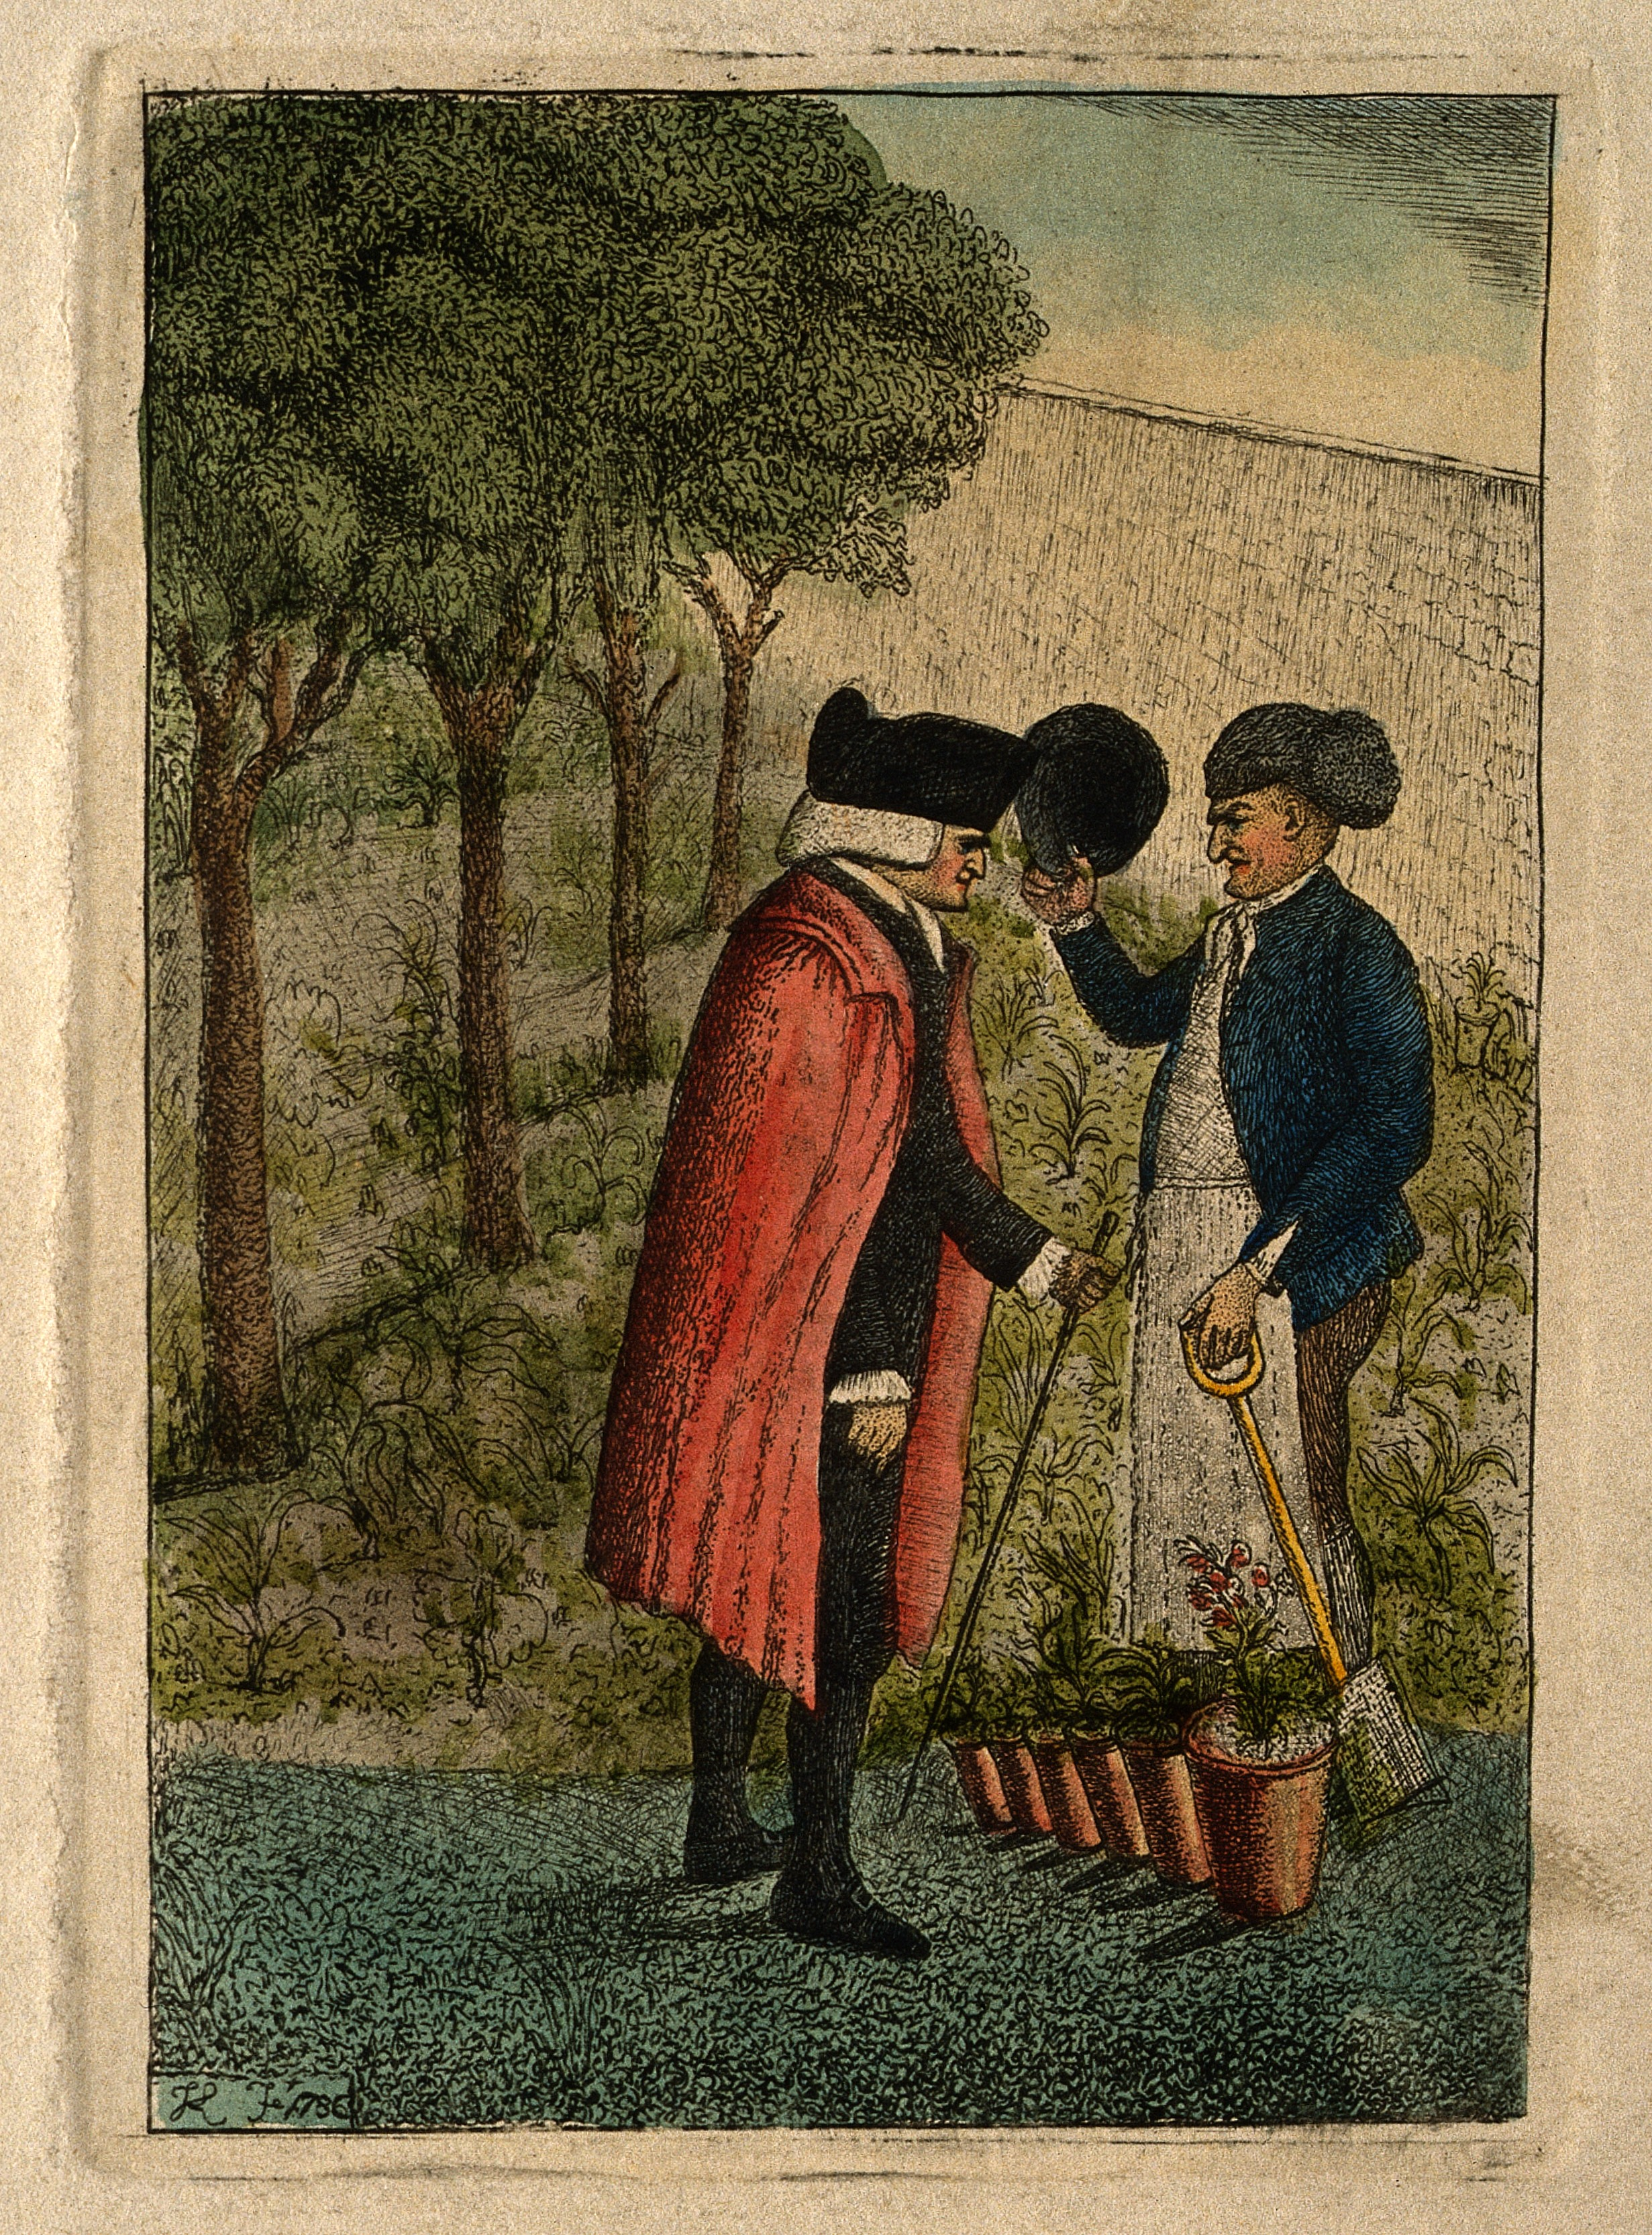 Coloured etching by J. Kay, 1786. Wellcome V0002873